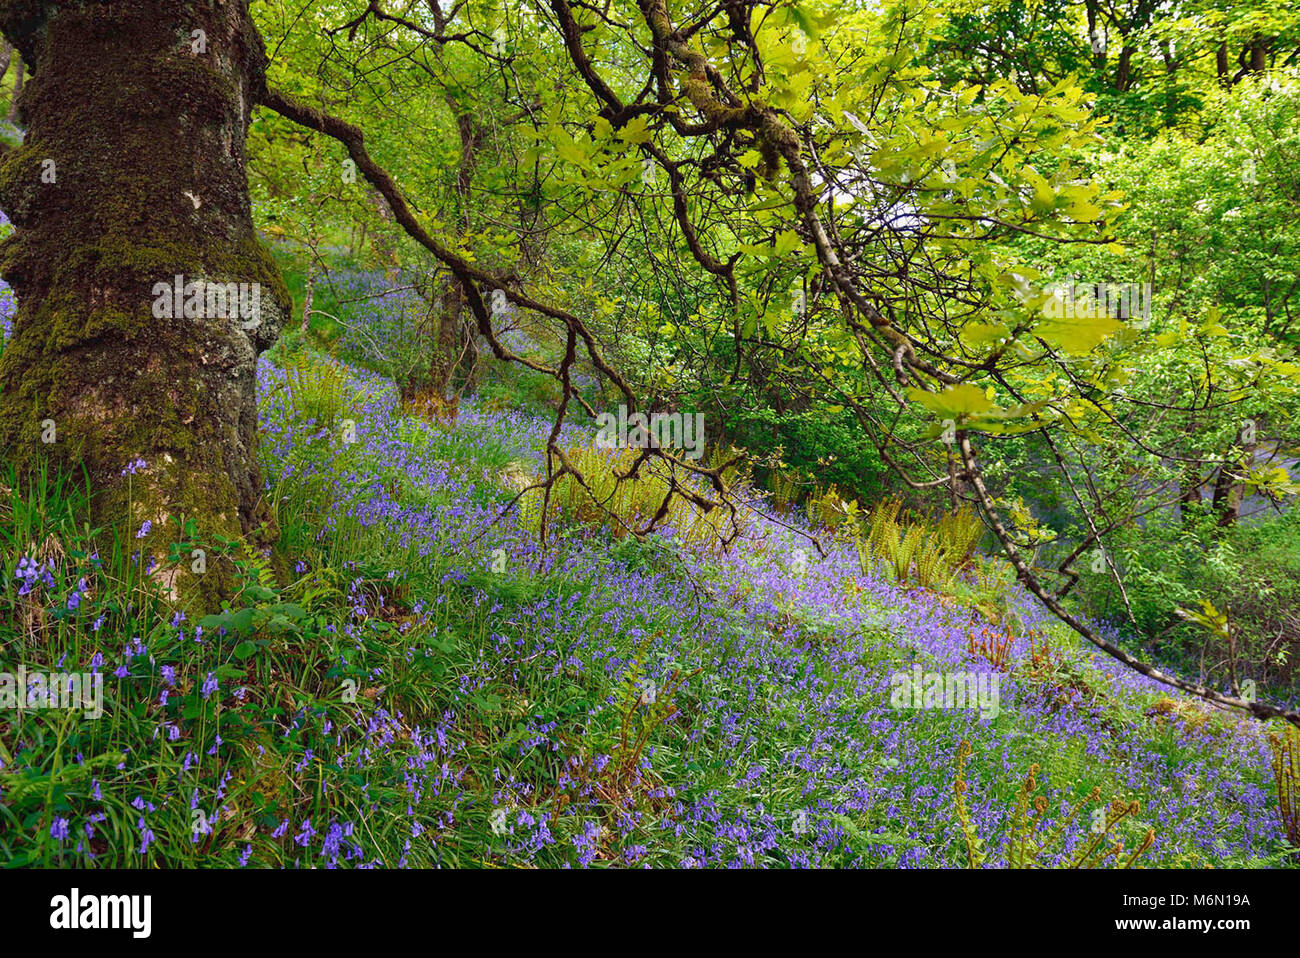 Forest of Paimpont, also known as the Forest of Broceliande: Hyacinths in the undergrowth - Stock Image